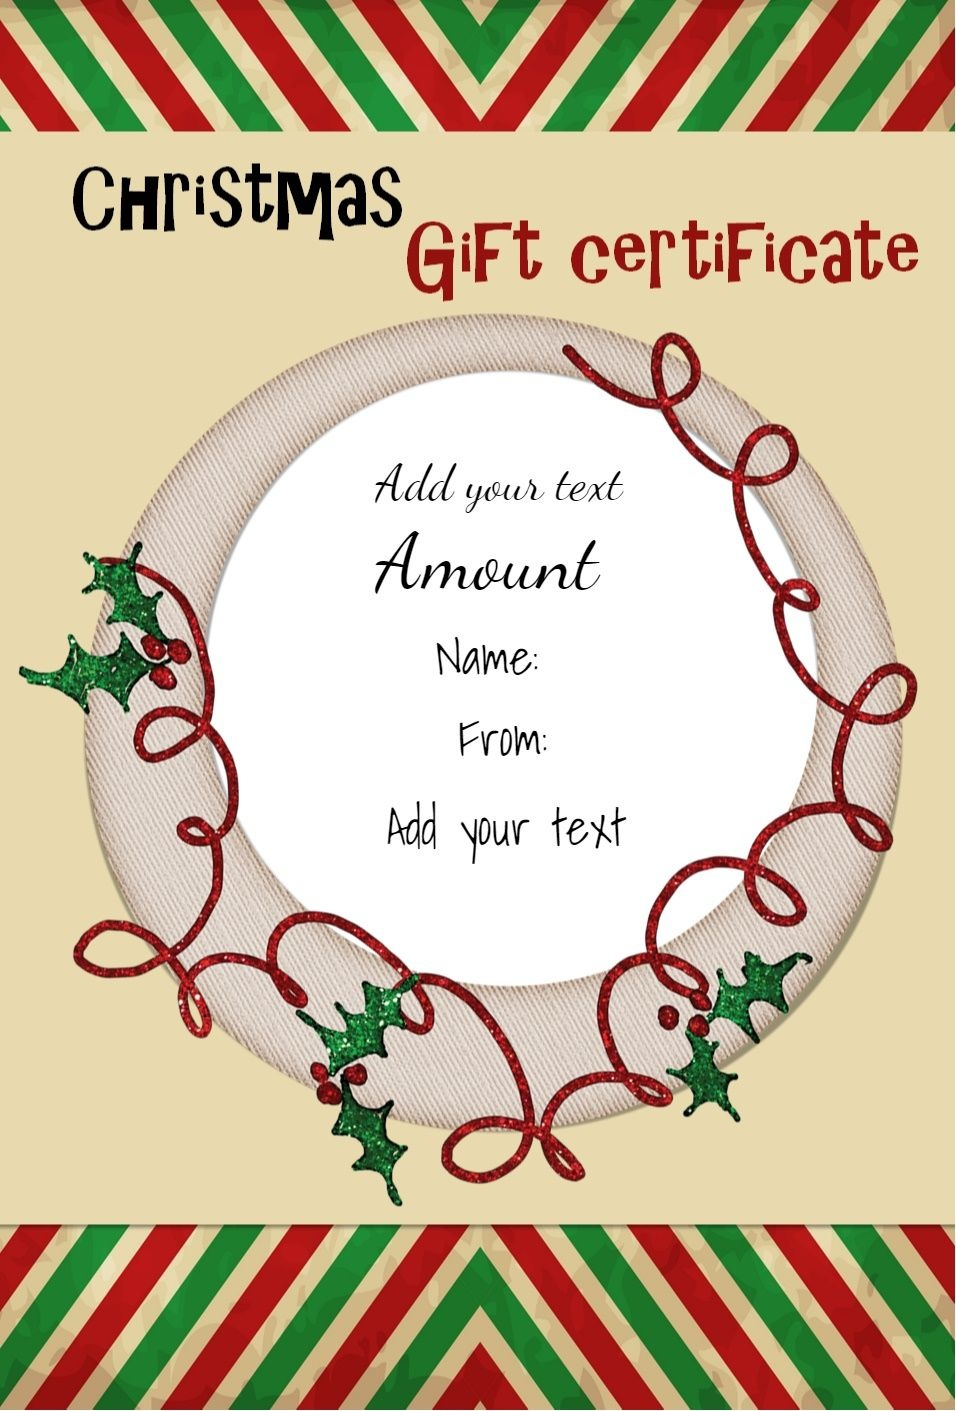 Pinamber M Ross On Gift Ideas | Gift Certificate Template - Free Printable Gift Certificate Christmas